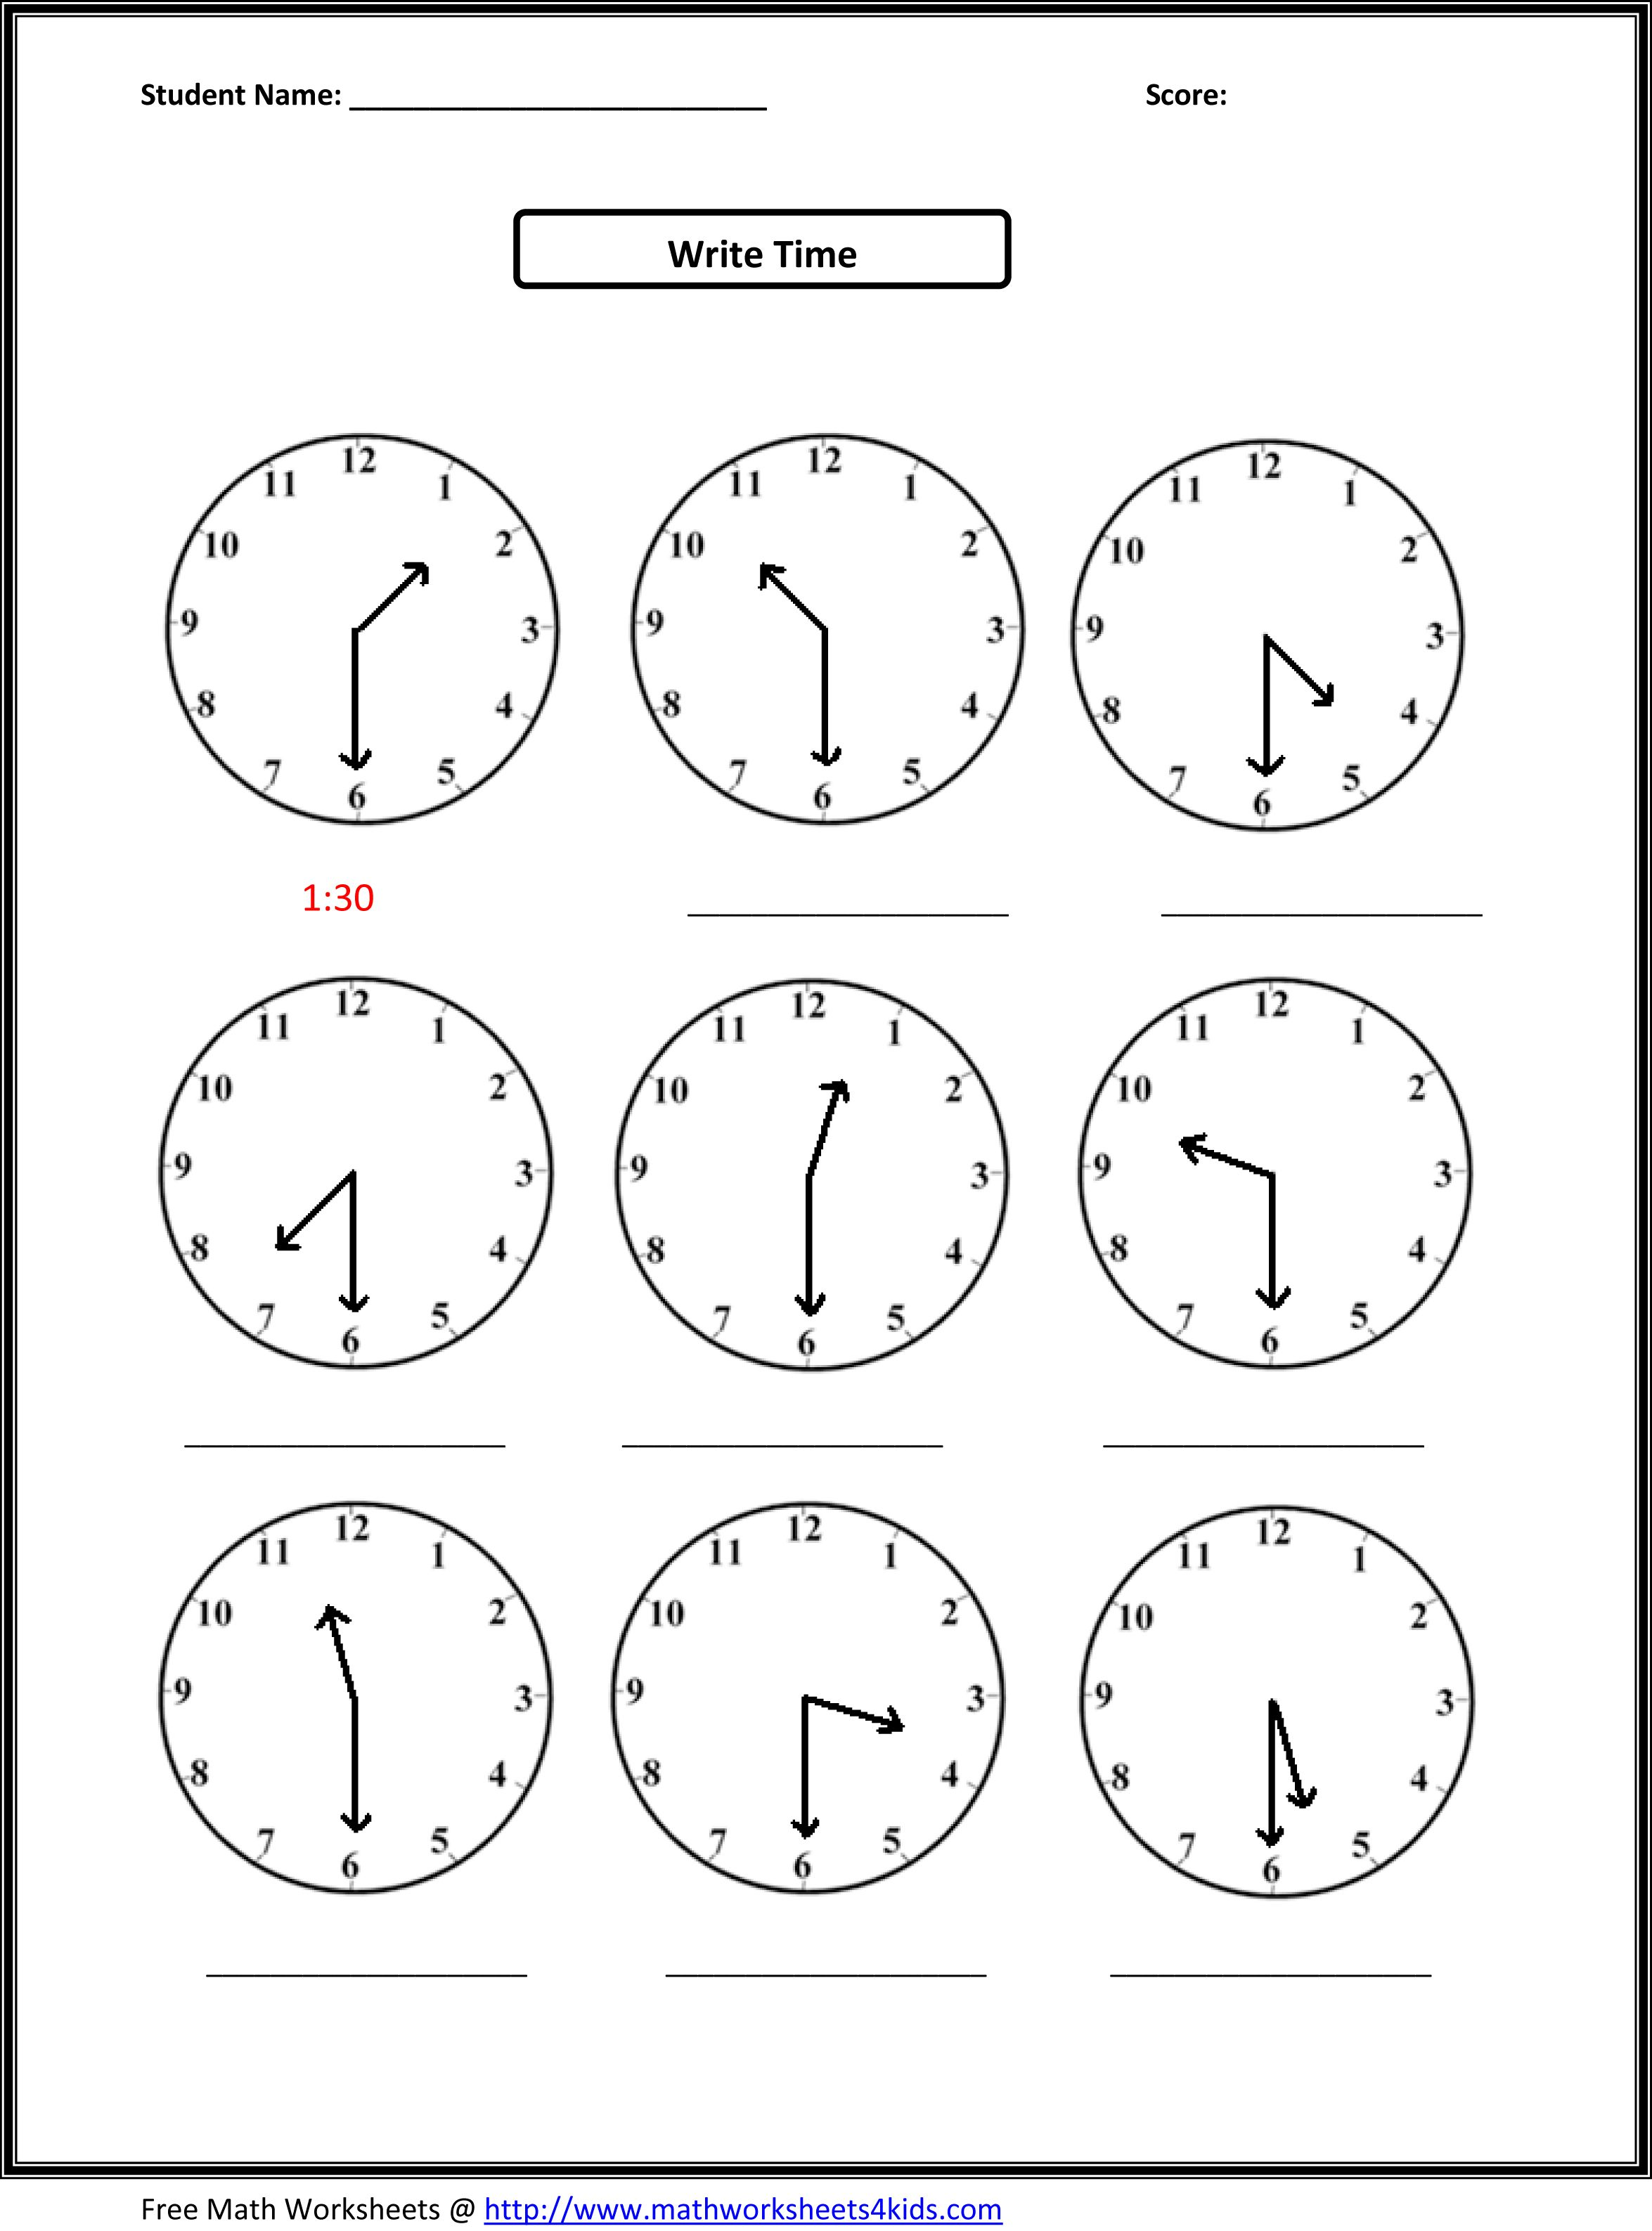 Weirdmailus  Unusual Worksheet On Time For Grade   Reocurent With Interesting Free Printable Telling Time Worksheets Nd Grade  Reocurent With Beauteous Shapes Worksheets For Nd Grade Also Math Reflection Worksheets In Addition Telling Time To The Quarter Hour Worksheet And Square Roots Worksheets Pdf As Well As Create Your Own Tracing Worksheet Additionally Powers Worksheet From Reocurentcom With Weirdmailus  Interesting Worksheet On Time For Grade   Reocurent With Beauteous Free Printable Telling Time Worksheets Nd Grade  Reocurent And Unusual Shapes Worksheets For Nd Grade Also Math Reflection Worksheets In Addition Telling Time To The Quarter Hour Worksheet From Reocurentcom